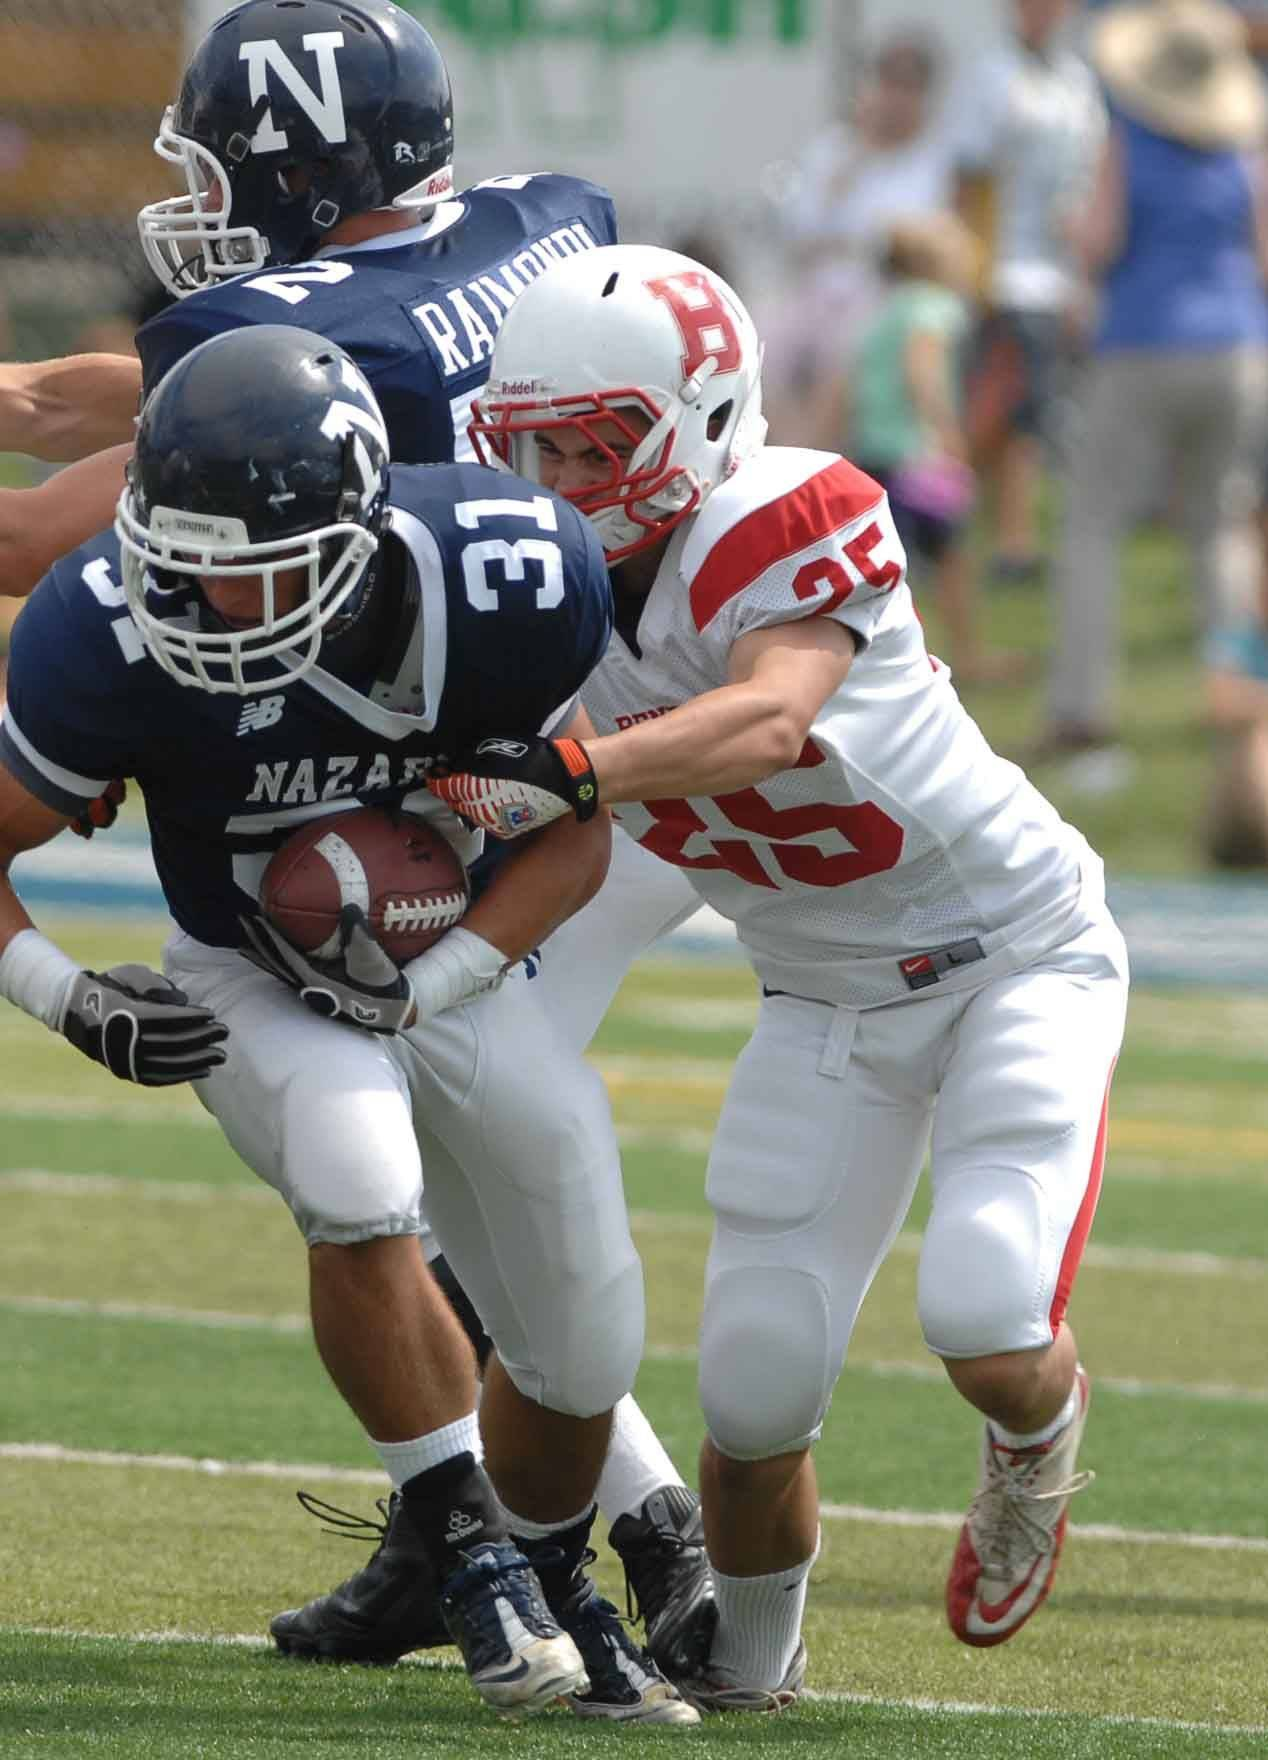 Porter Ontko of Benet pulls down Rudy Romagnano of Nazareth during the Benet at Nazareth football Saturday in LaGrange Park.